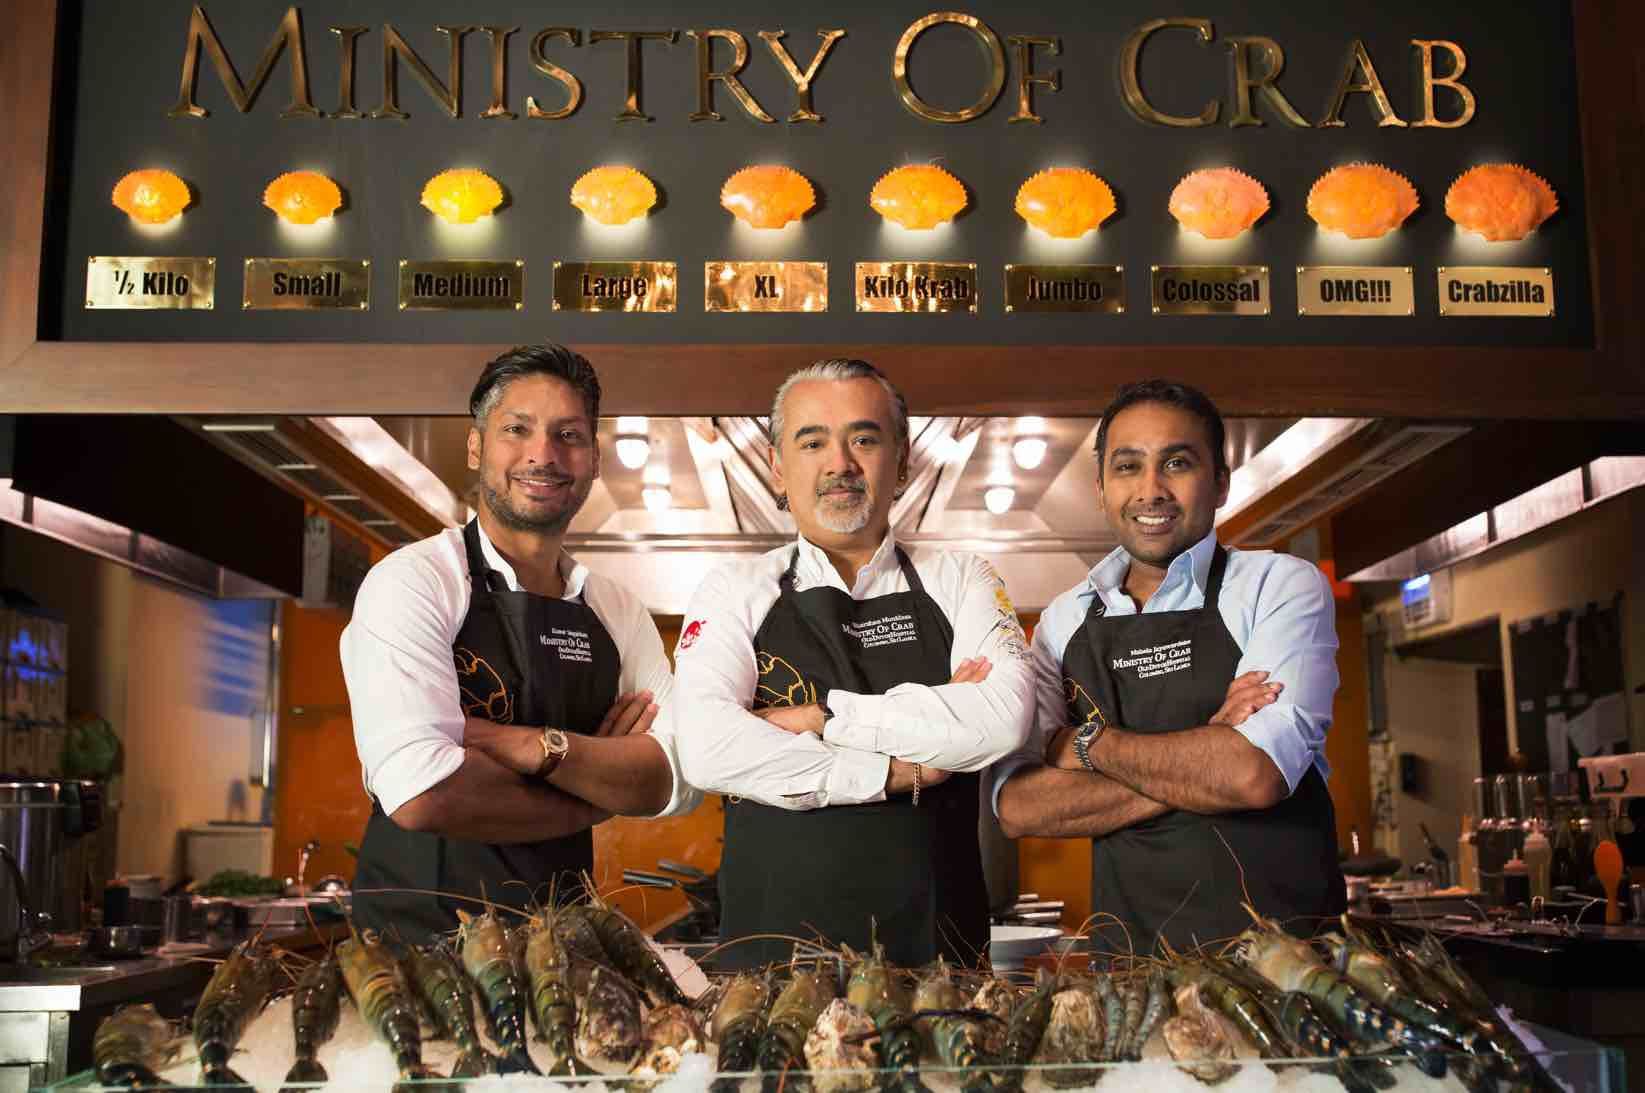 Dharshan Munidasa (middle) founder of Ministry of Crab with two of his chefs